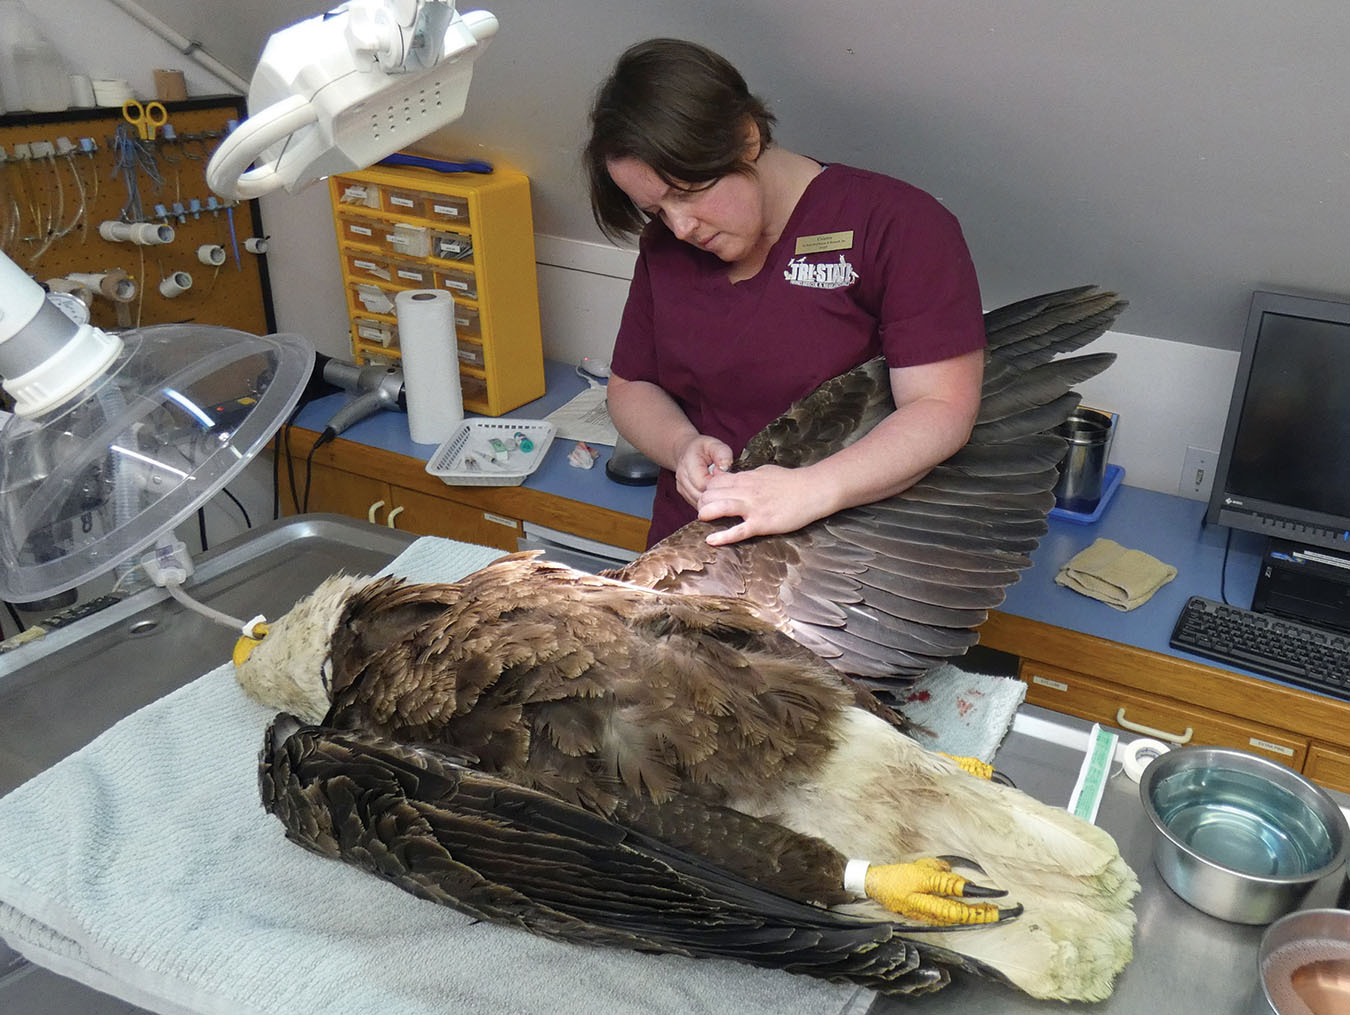 Wildlife veterinarian Cristin Kelley of Tri-State Bird Rescue & Research in Delaware sutured a Bald Eagle's injured wing while it was under anesthesia in May 2019. The bird had been found injured on a highway, and after it recovered, it was released. Photo by Tri-State Bird Rescue & Research